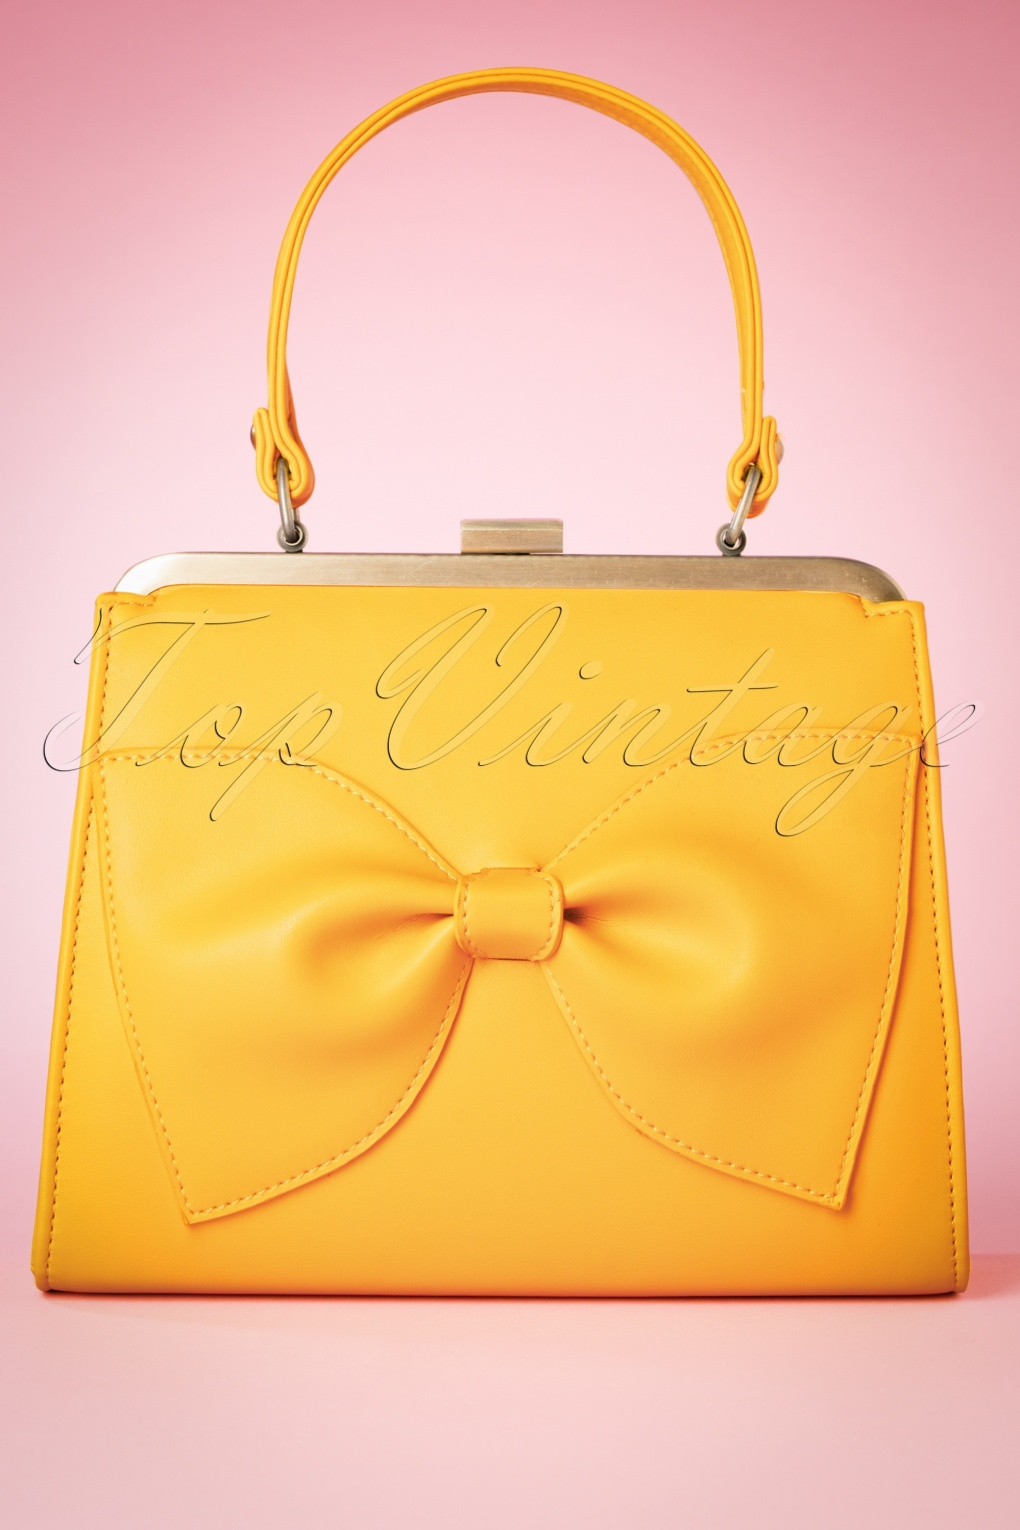 1960s Style Dresses, Clothing, Shoes UK 50s Inez Sunshine In My Pocket Handbag in Yellow £54.50 AT vintagedancer.com